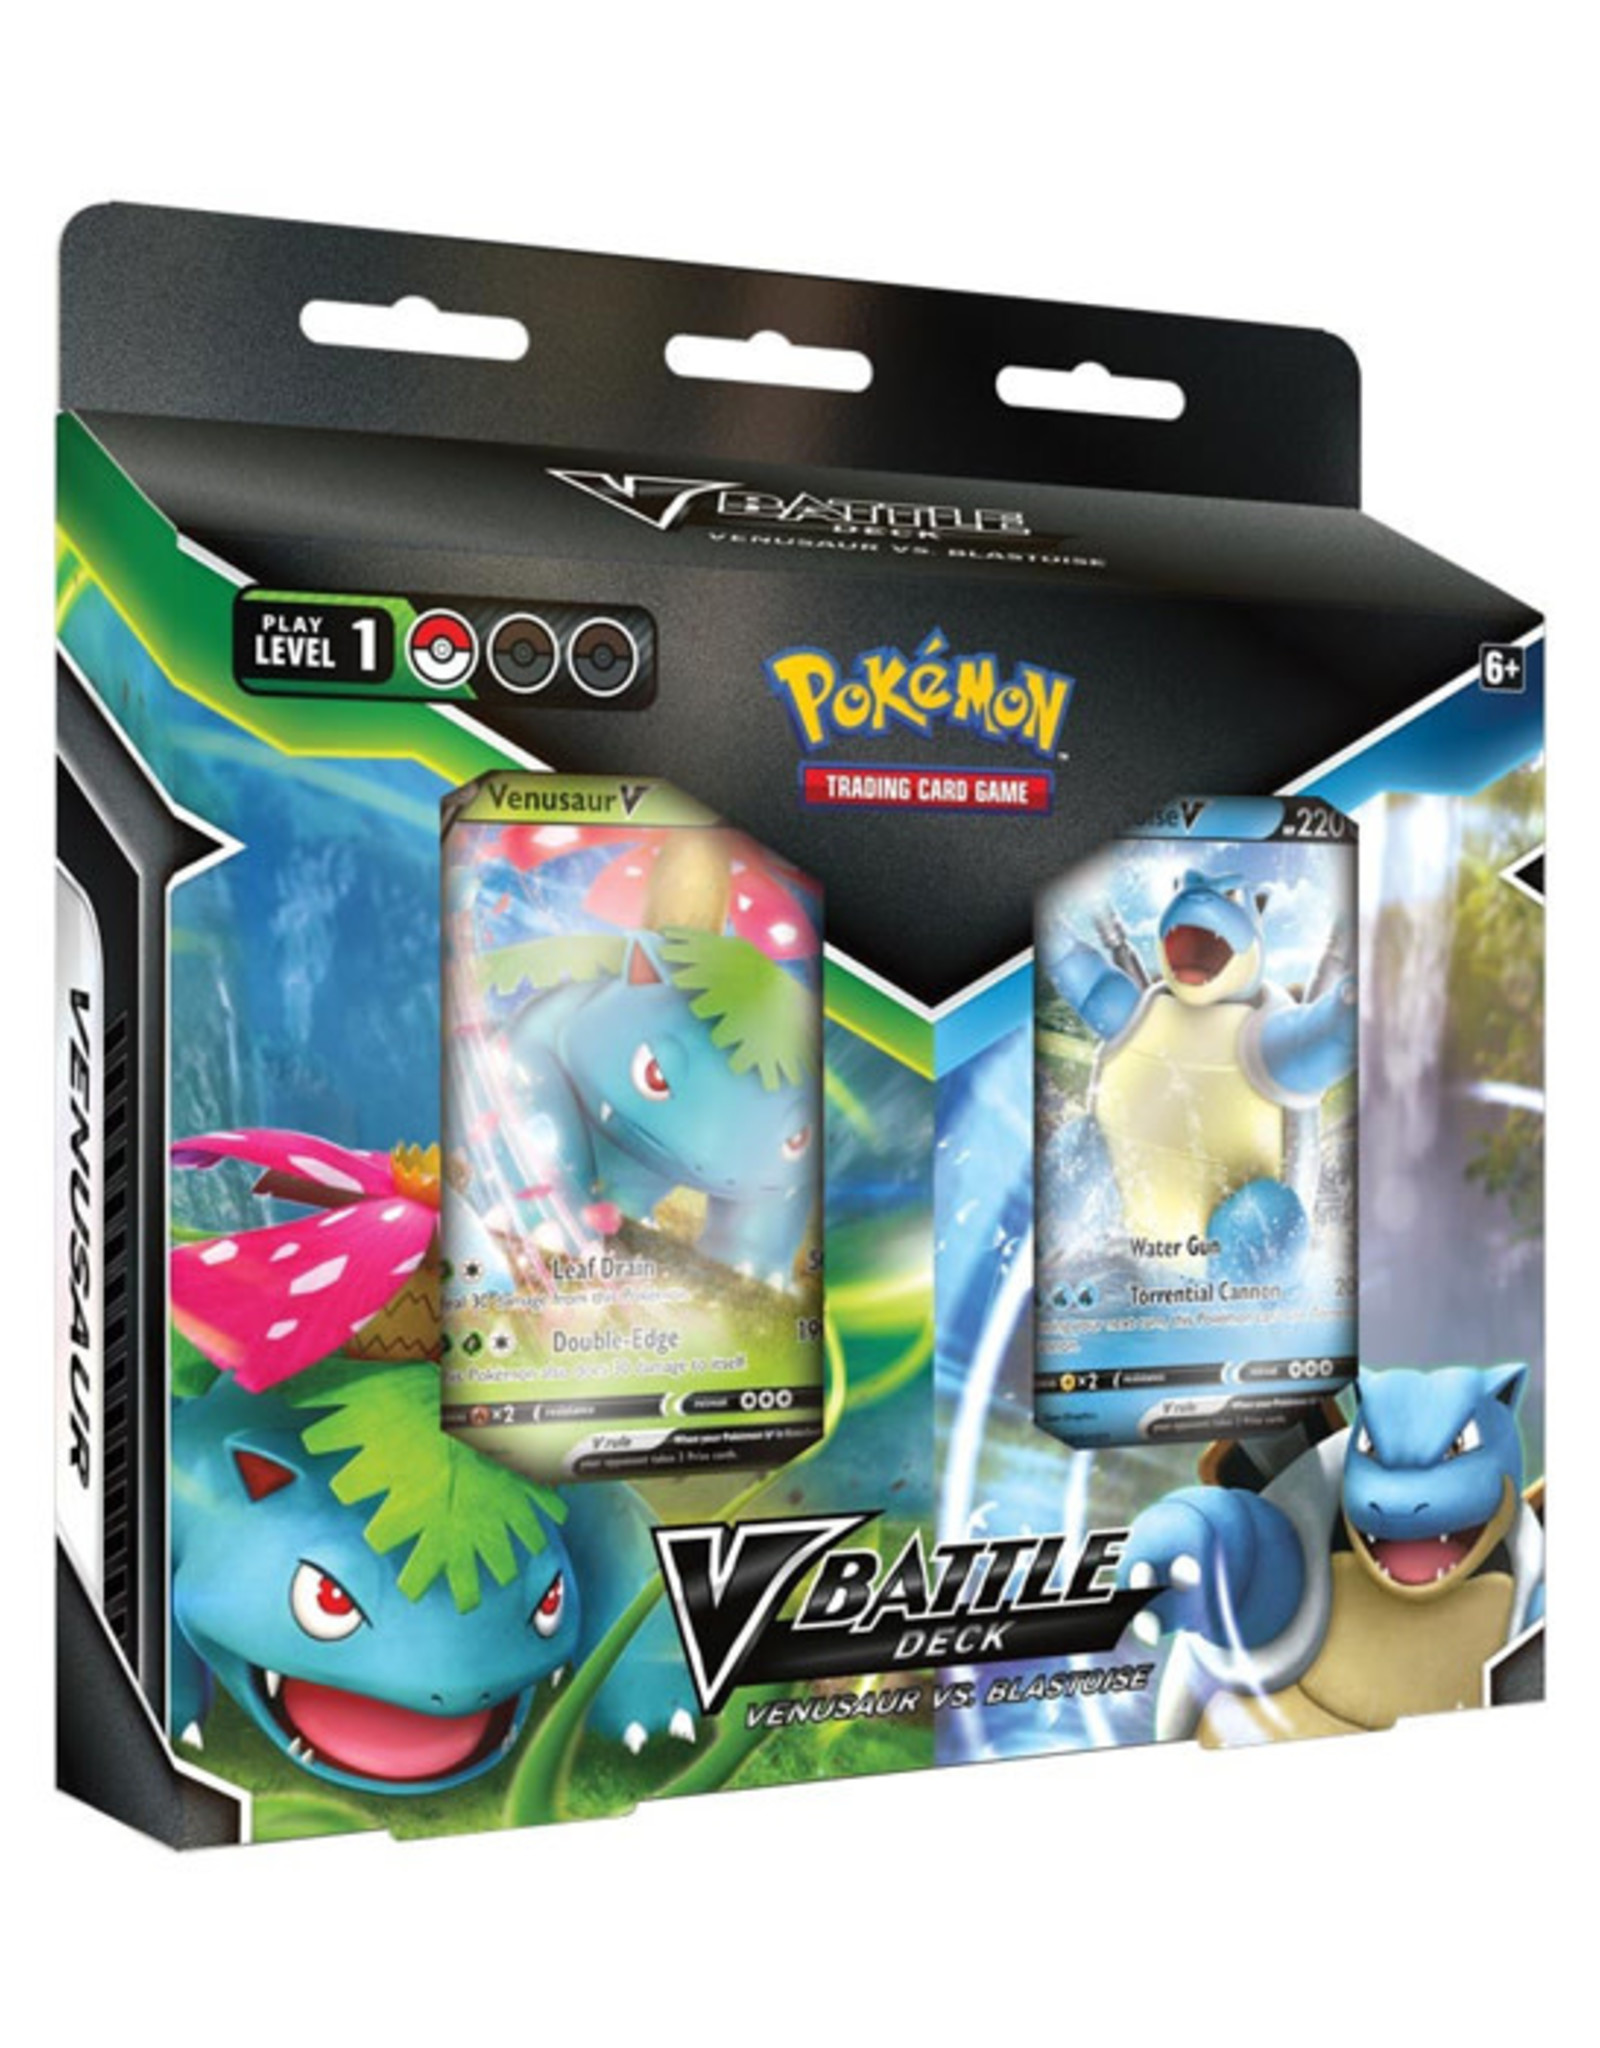 Pokemon Pokemon: V Battle Deck - Venusaur vs Blastoise